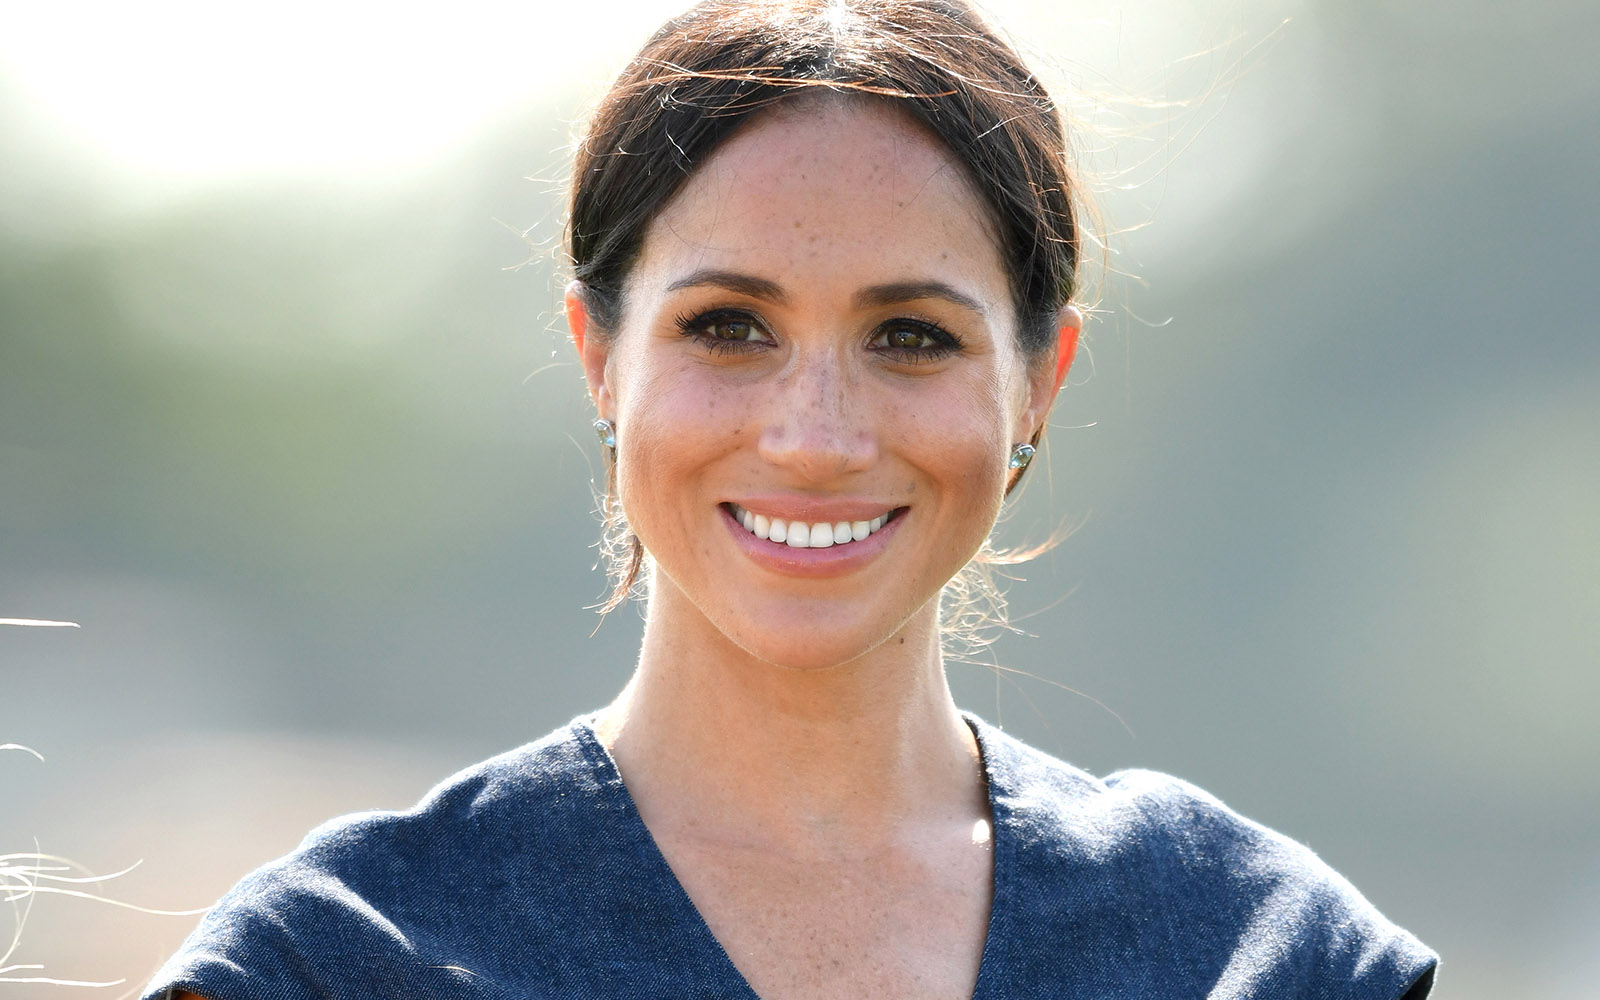 Meghan Markle Has a Favorite Beauty Product to Fix Every Annoying Travel Issue